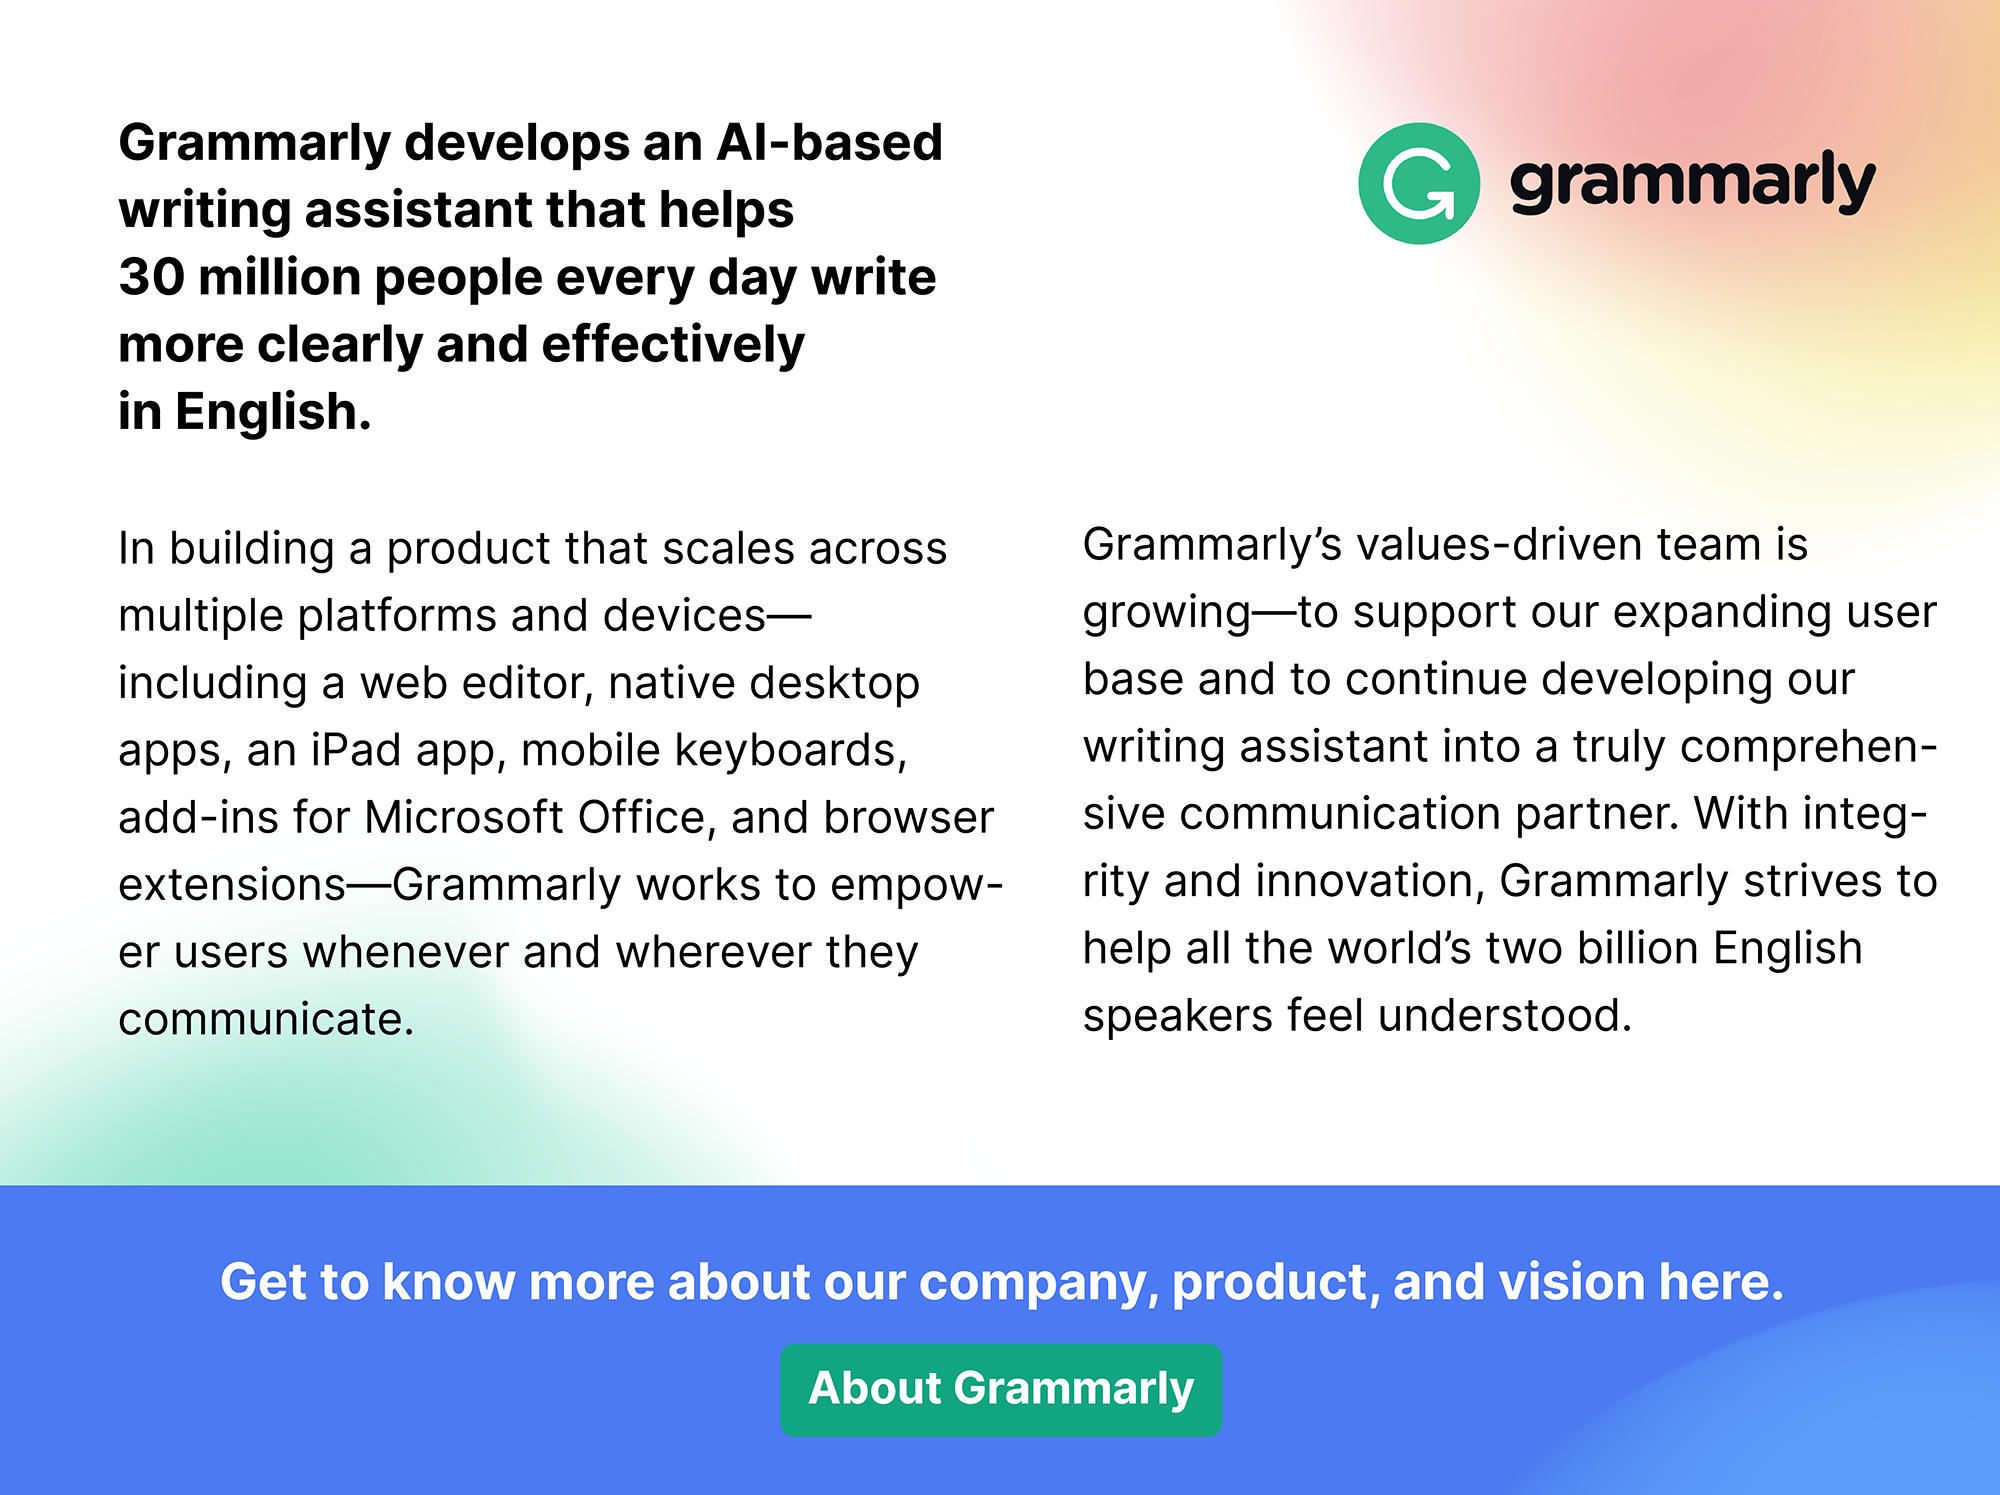 More about Grammarly: grammarly.com/about